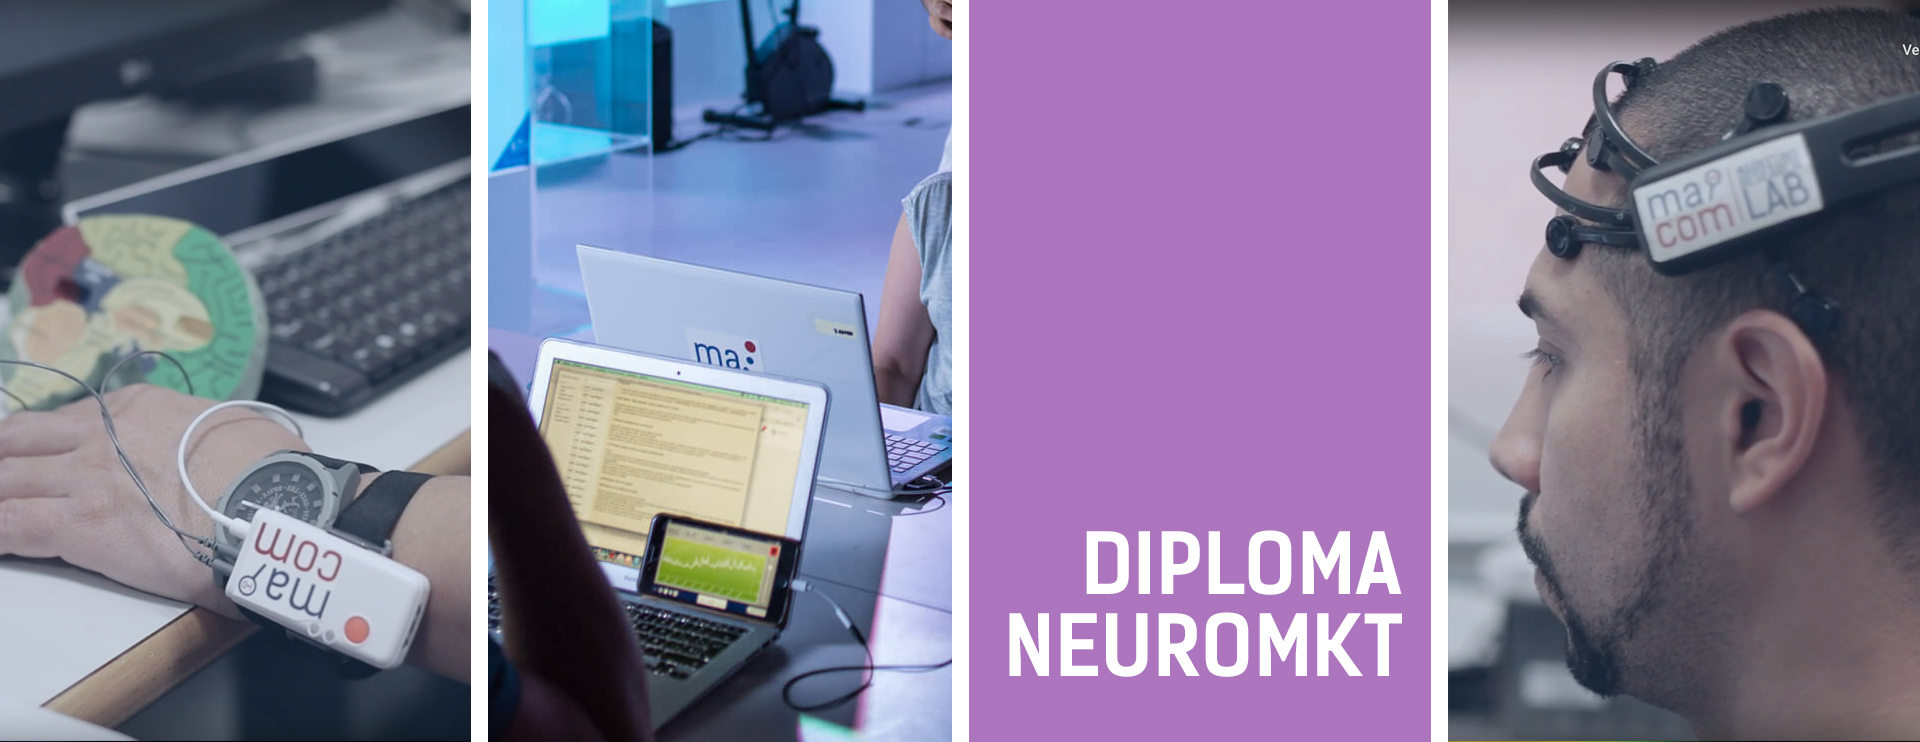 Diploma Neuromarketing Valencia Alicante UPV